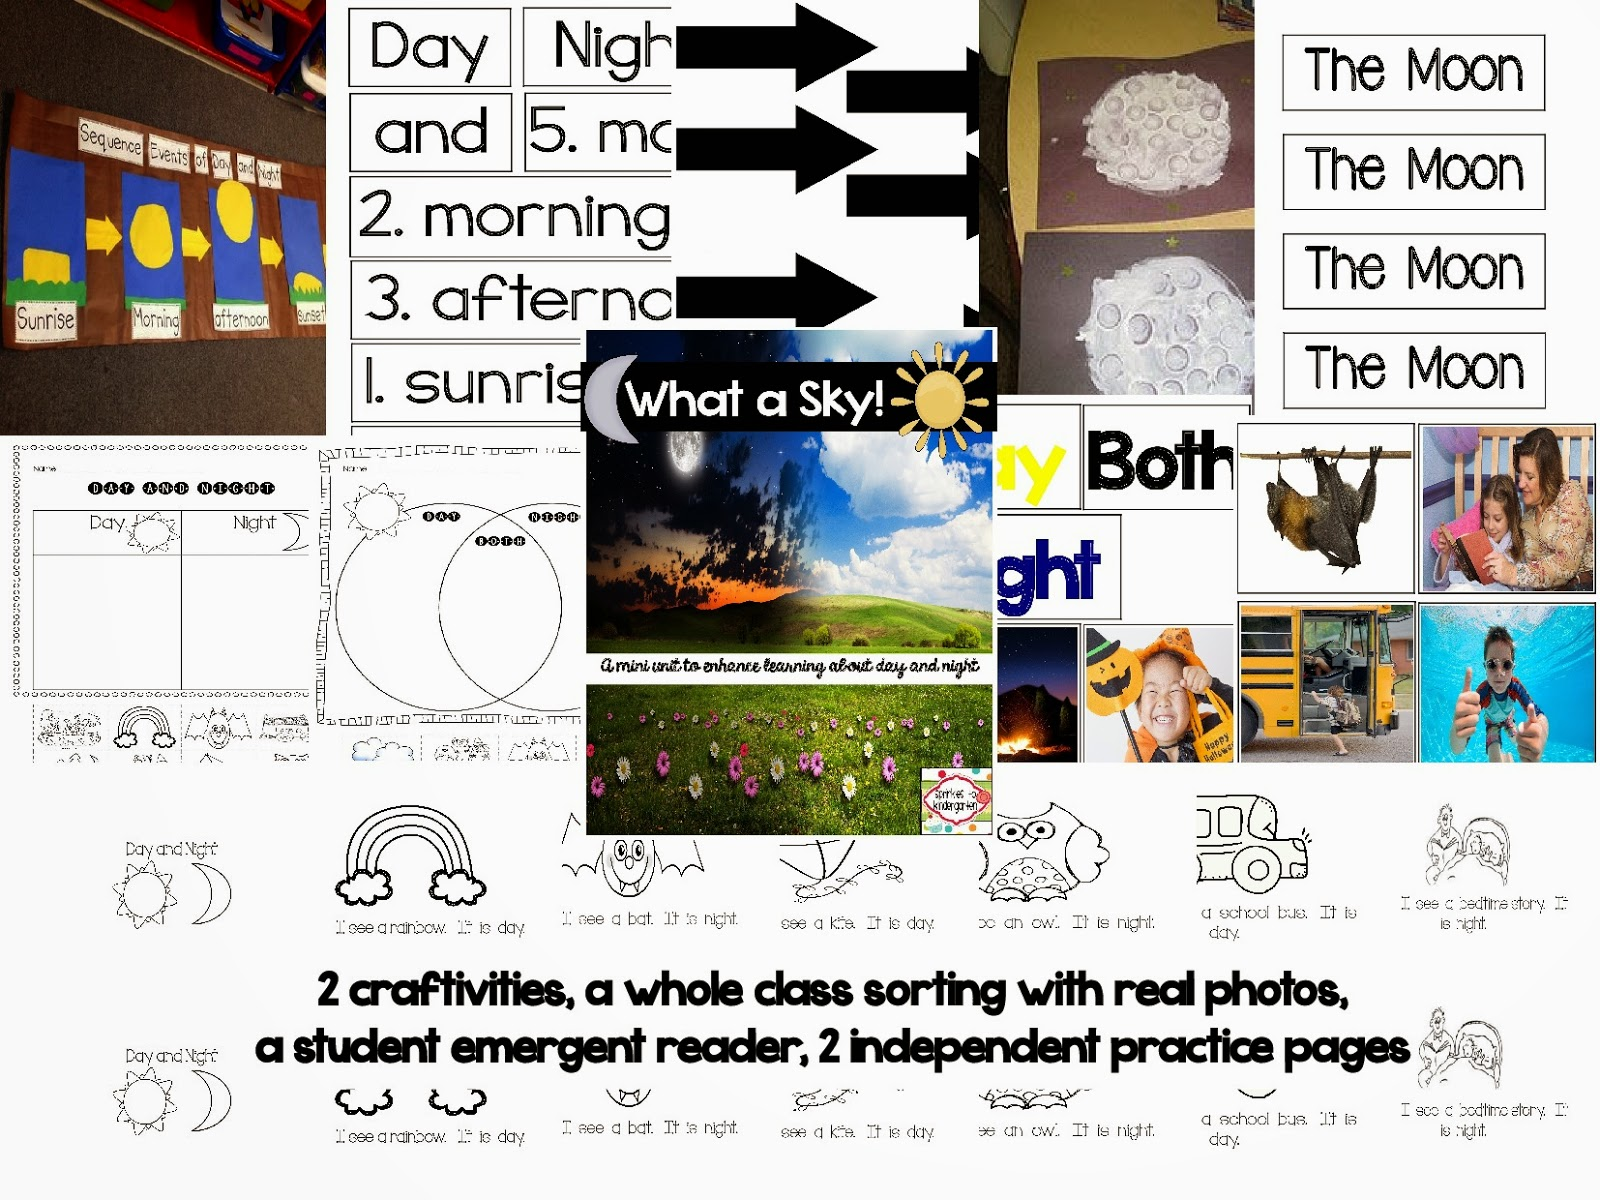 https://www.teacherspayteachers.com/Product/What-a-Sky-A-mini-unit-to-enhance-learning-about-day-and-night-1620279